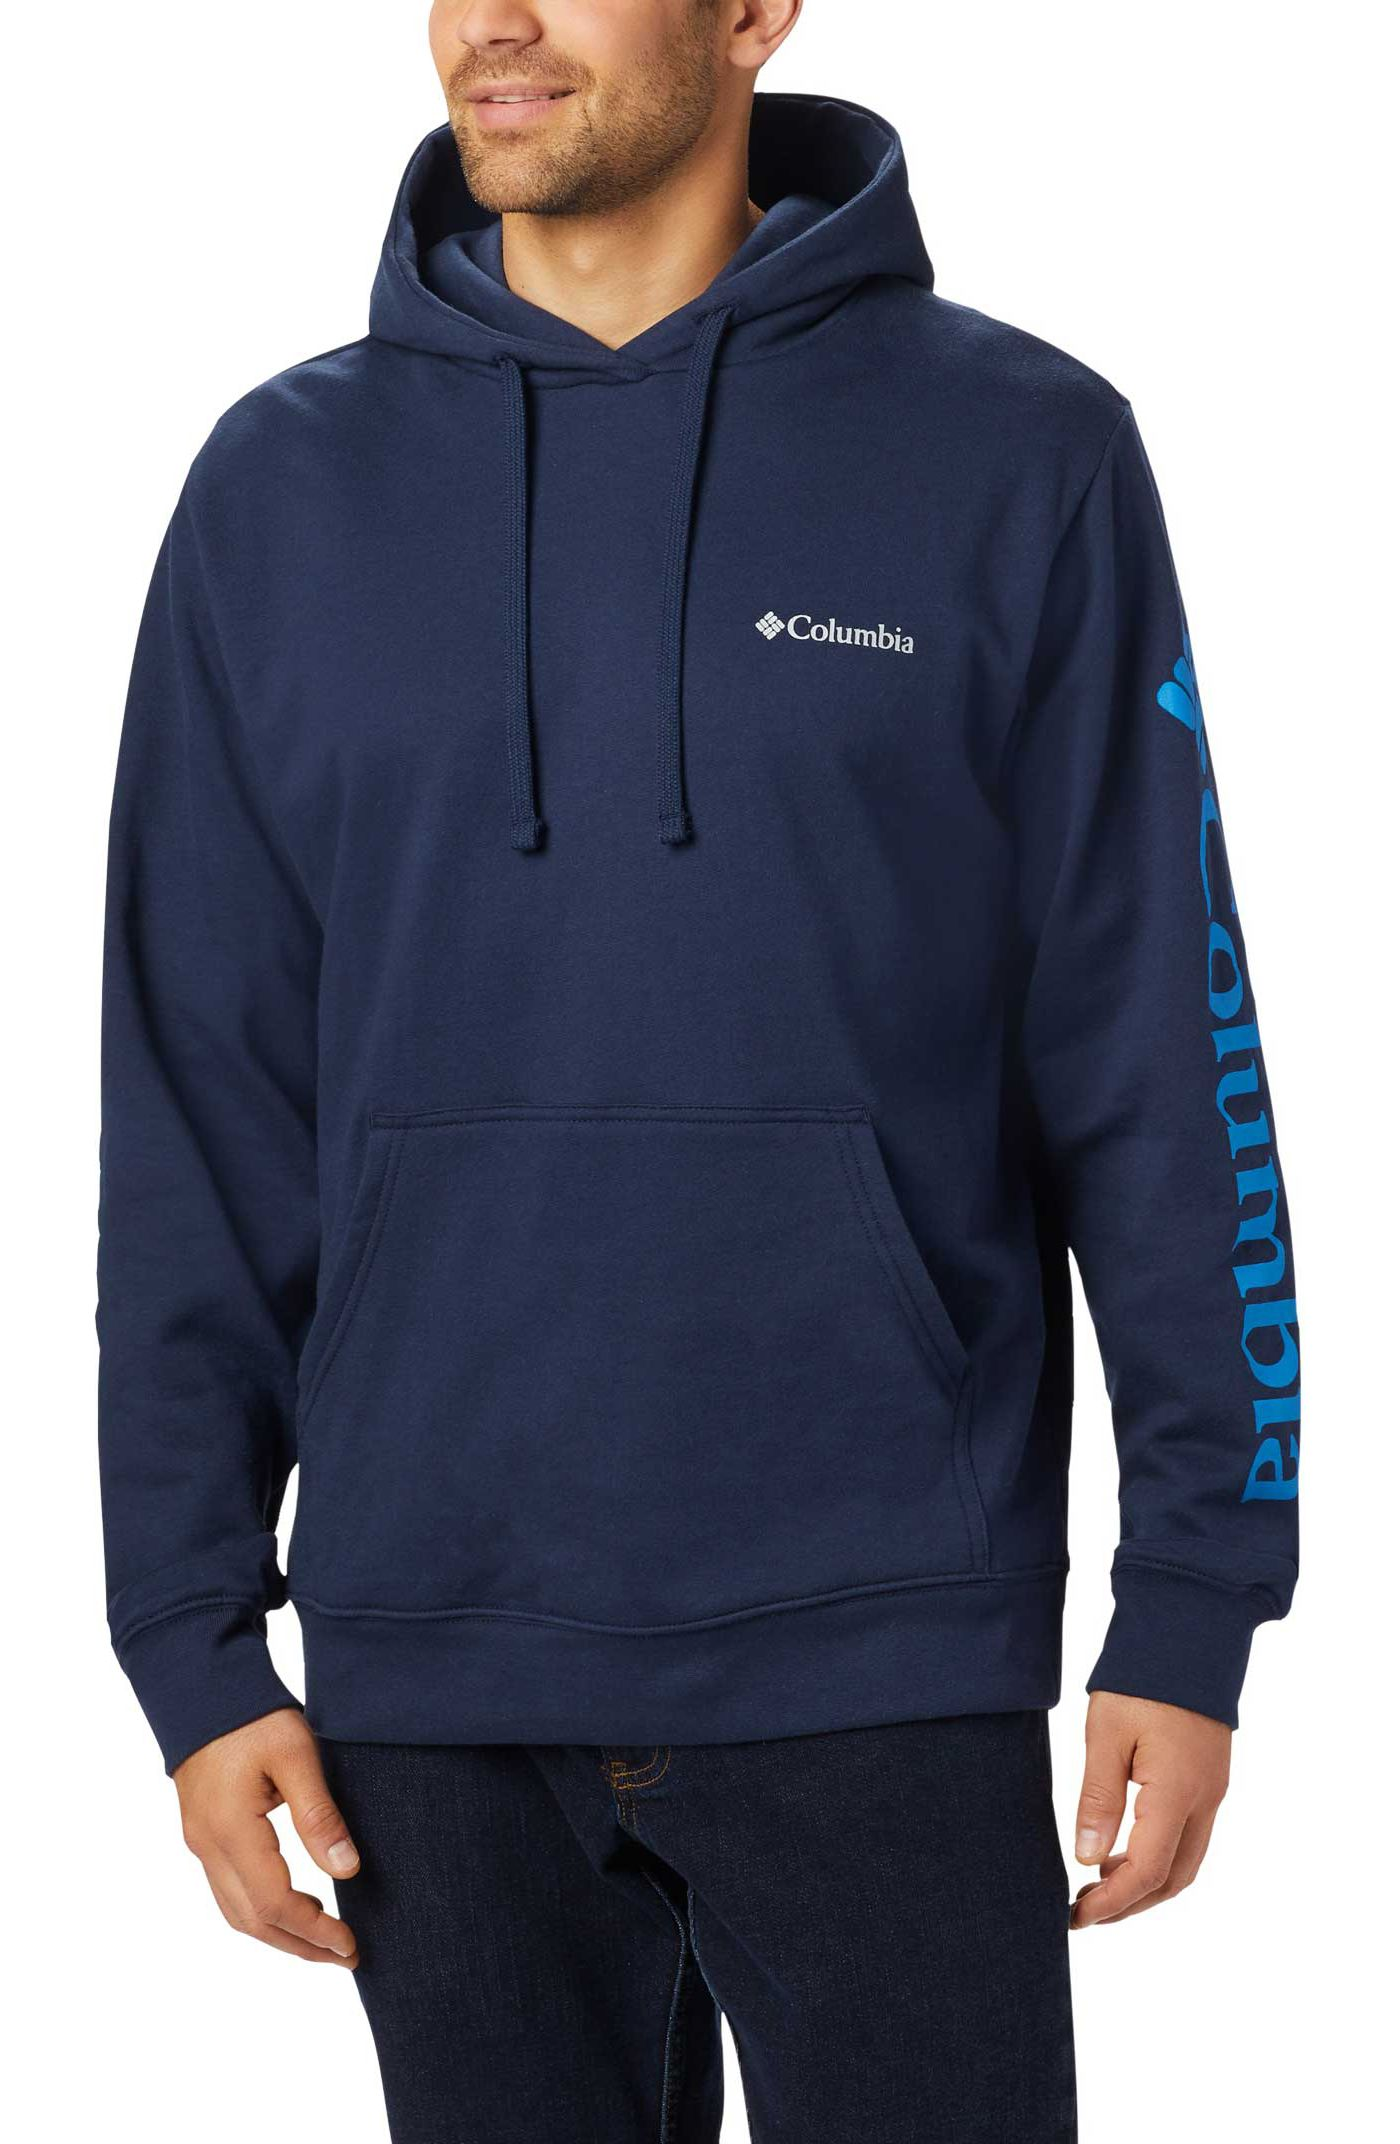 Columbia Men's Viewmont II Sleeve Graphic Hoodie (Regular and Big & Tall)